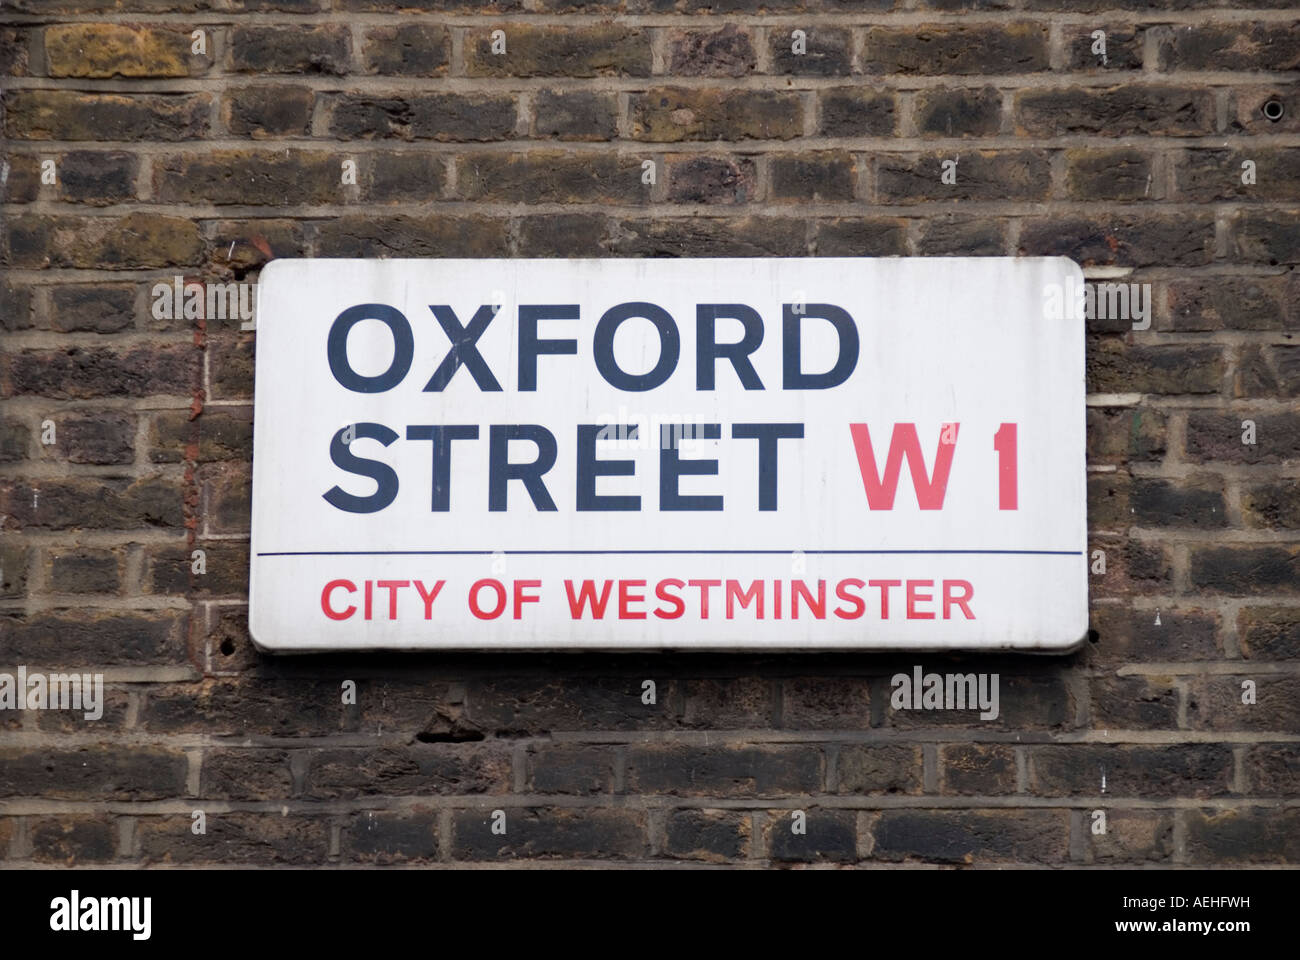 Oxford street sign Central London UK - Stock Image